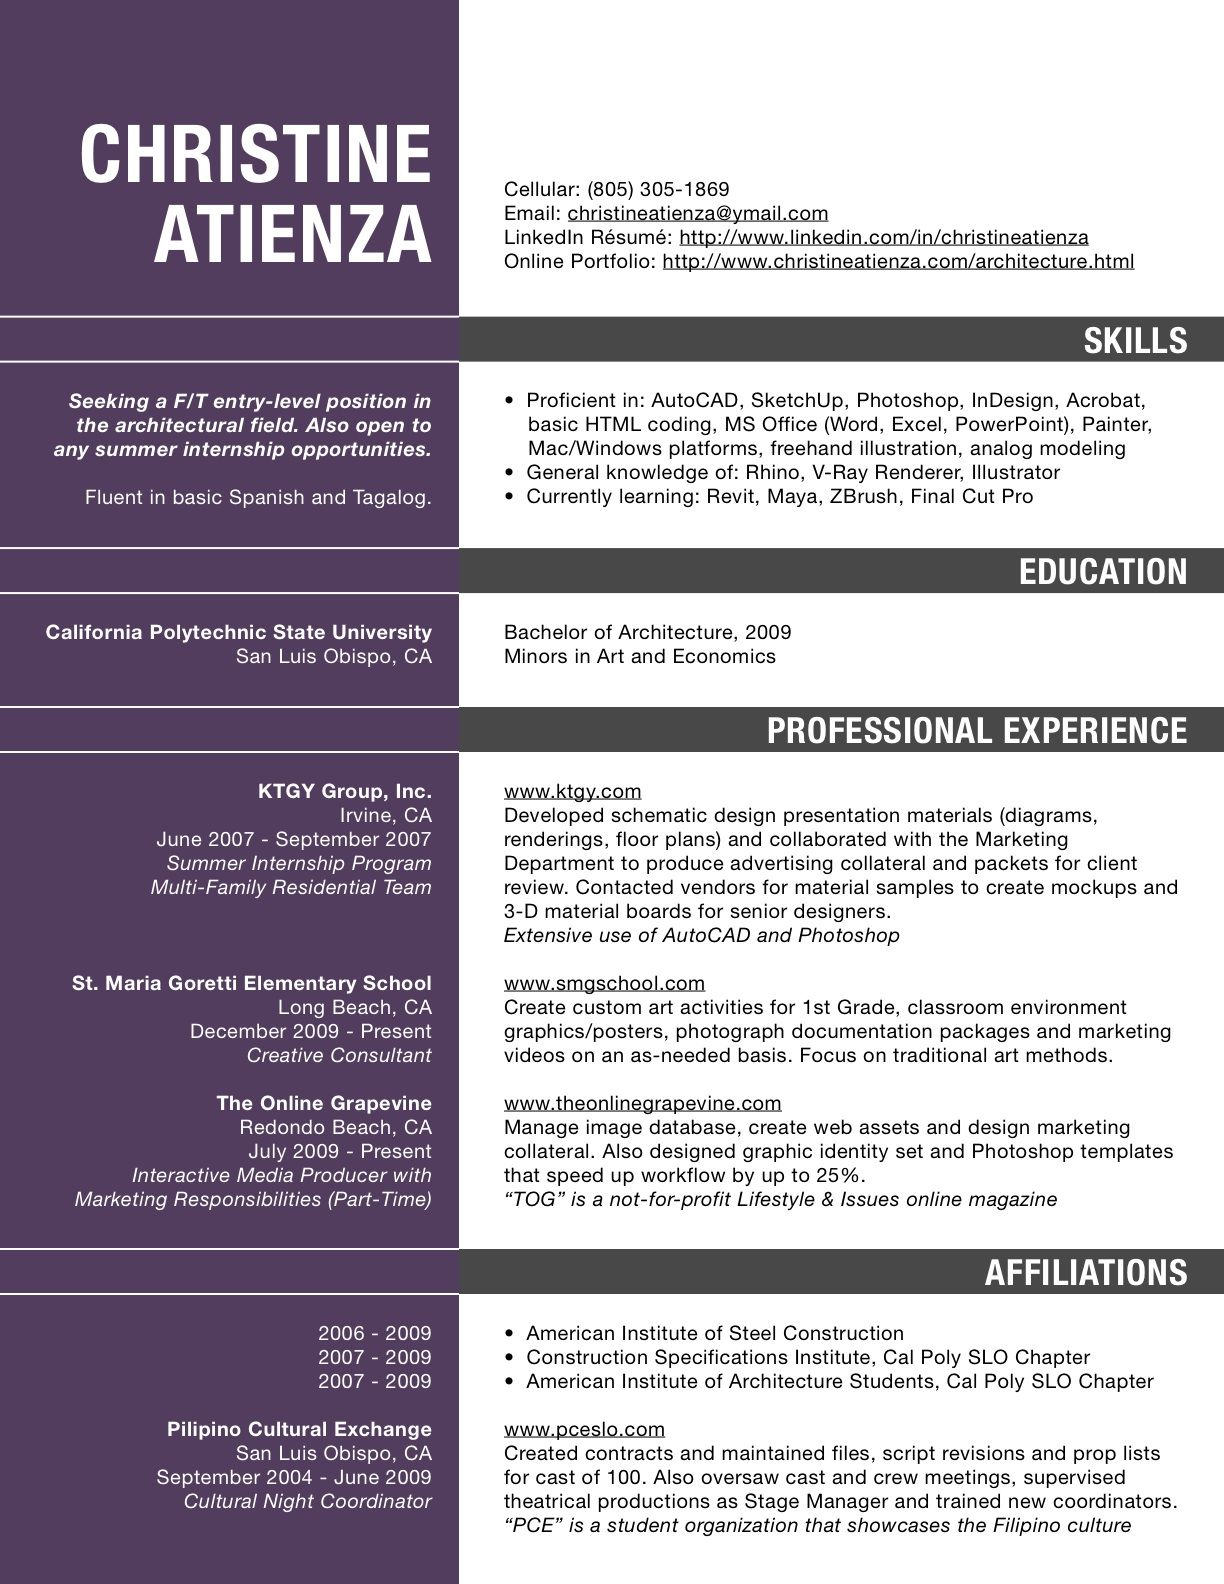 Architecture resume pdf resume for architects professionals resume architecture resume pdf resume for architects professionals altavistaventures Gallery